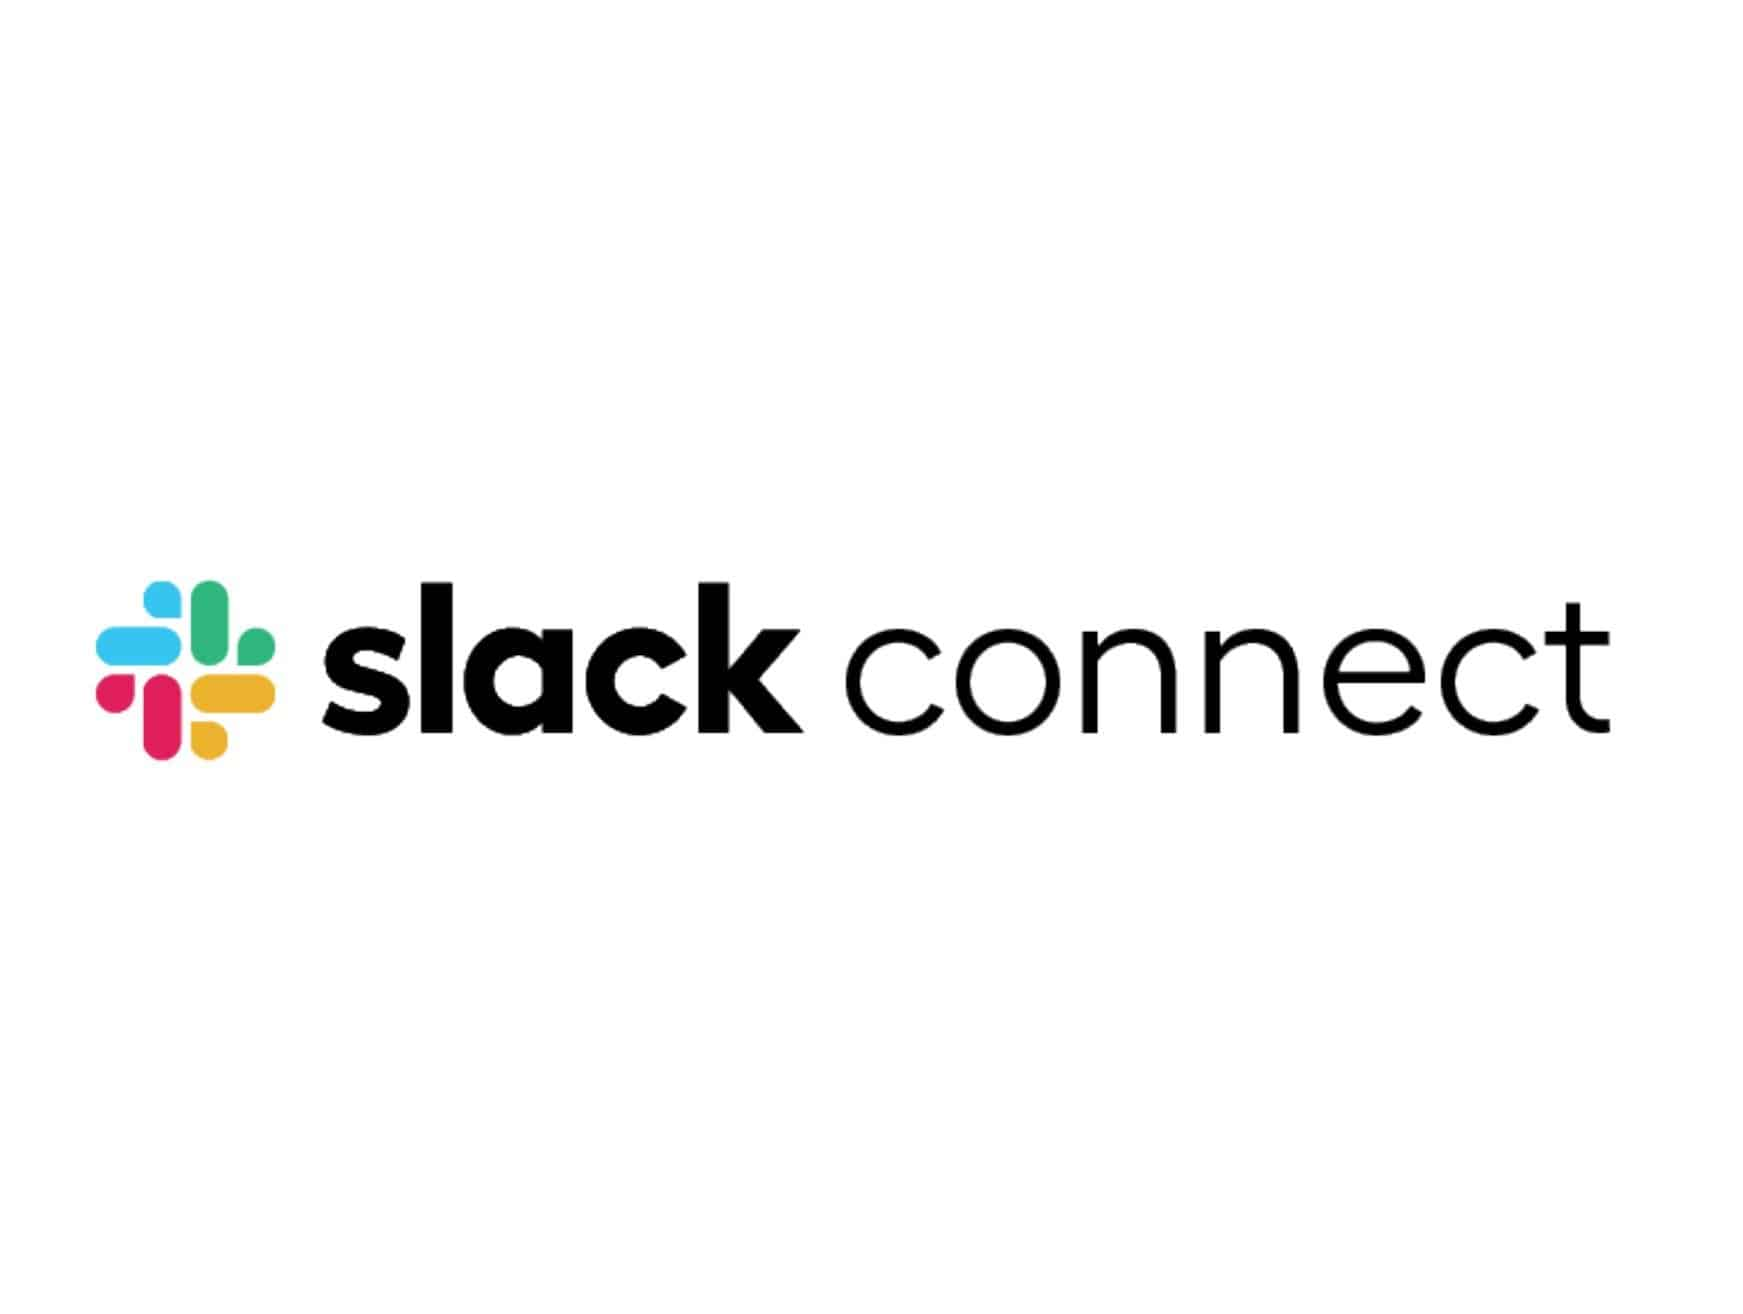 """CPO Magazine: """"Slack Connect"""" Direct Messaging Feature Pulled in a Matter of Days Due to Serious Security Concerns"""